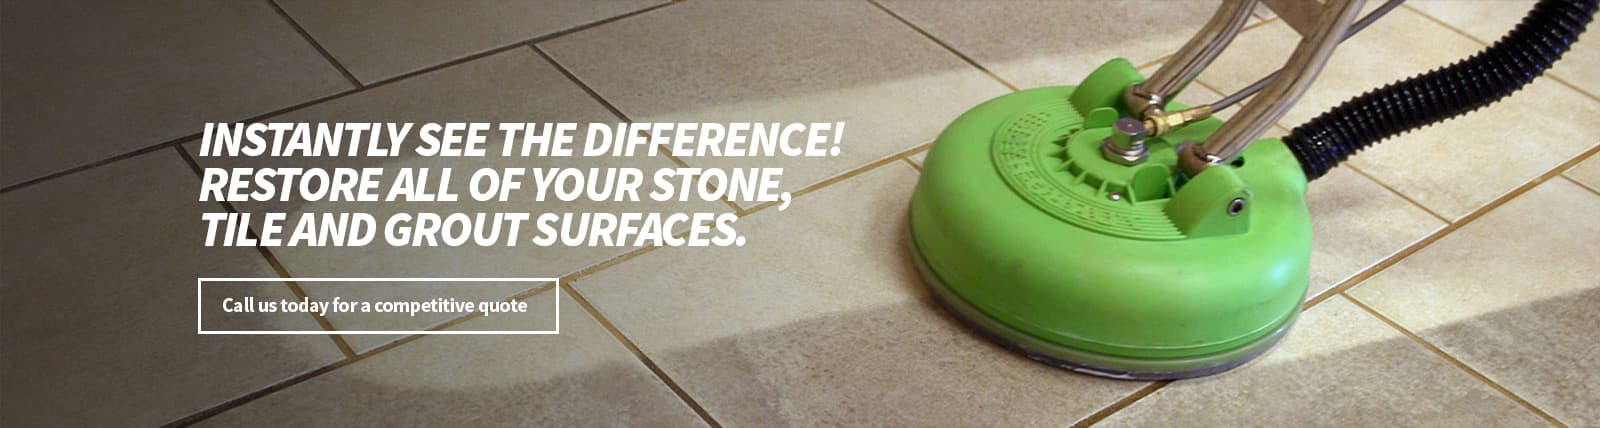 Restore Stone, Tile and Grout Surfaces